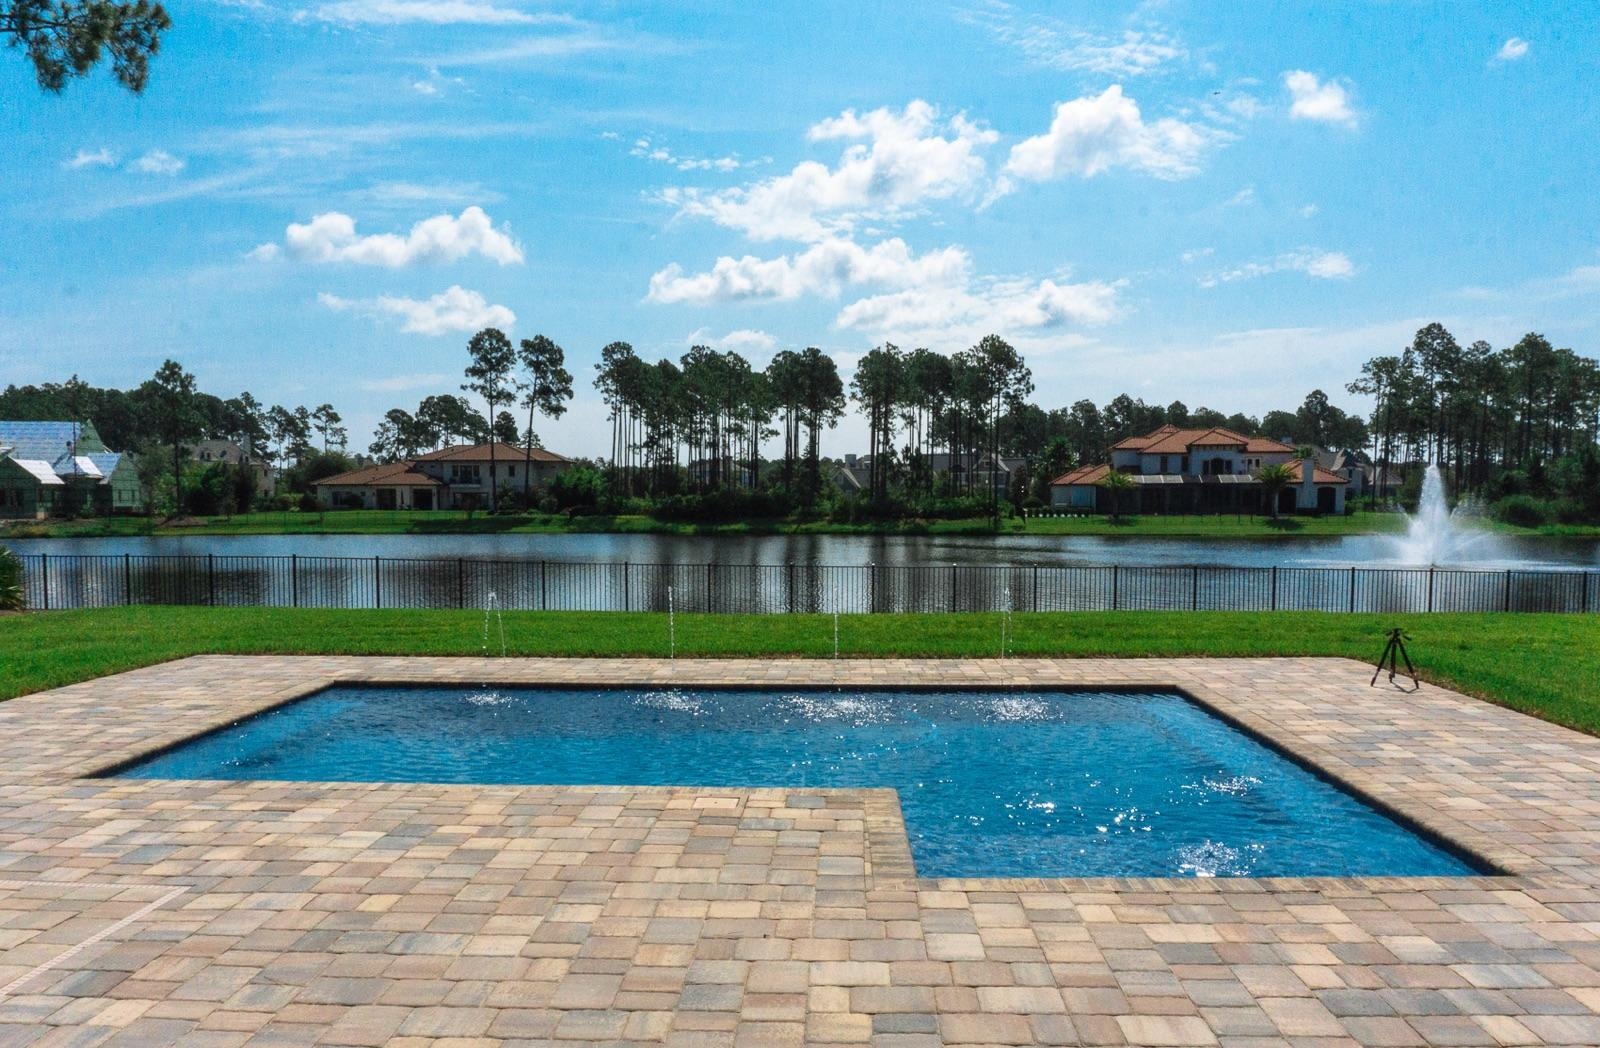 Florida Luxury Pools image 2